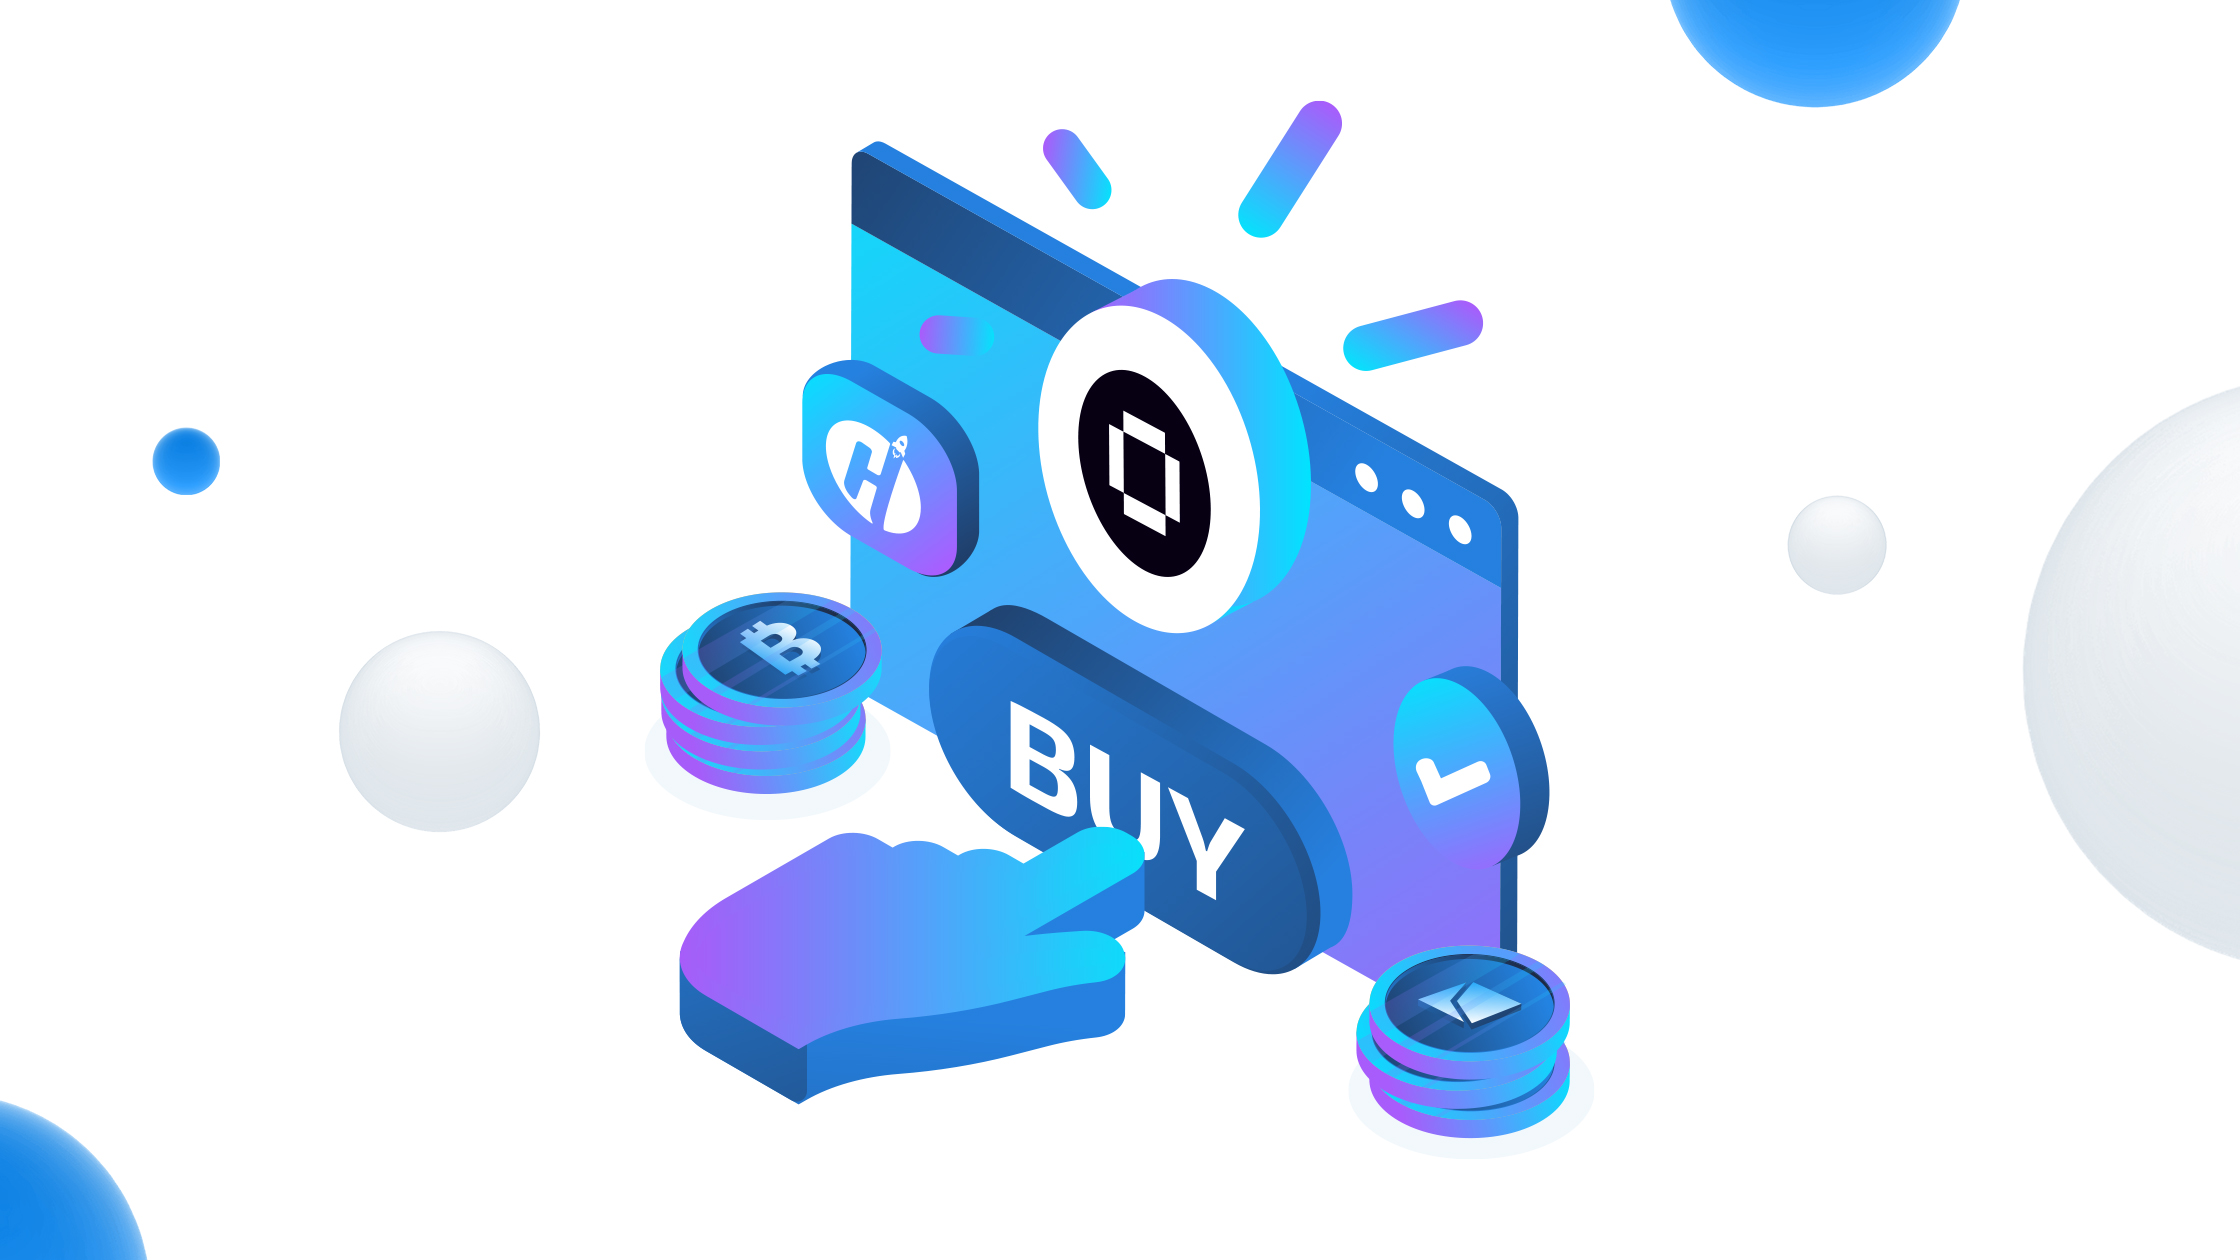 Step-by-Step Guide on How to Buy Crypto on Okcoin and Deposit with Hodlnaut